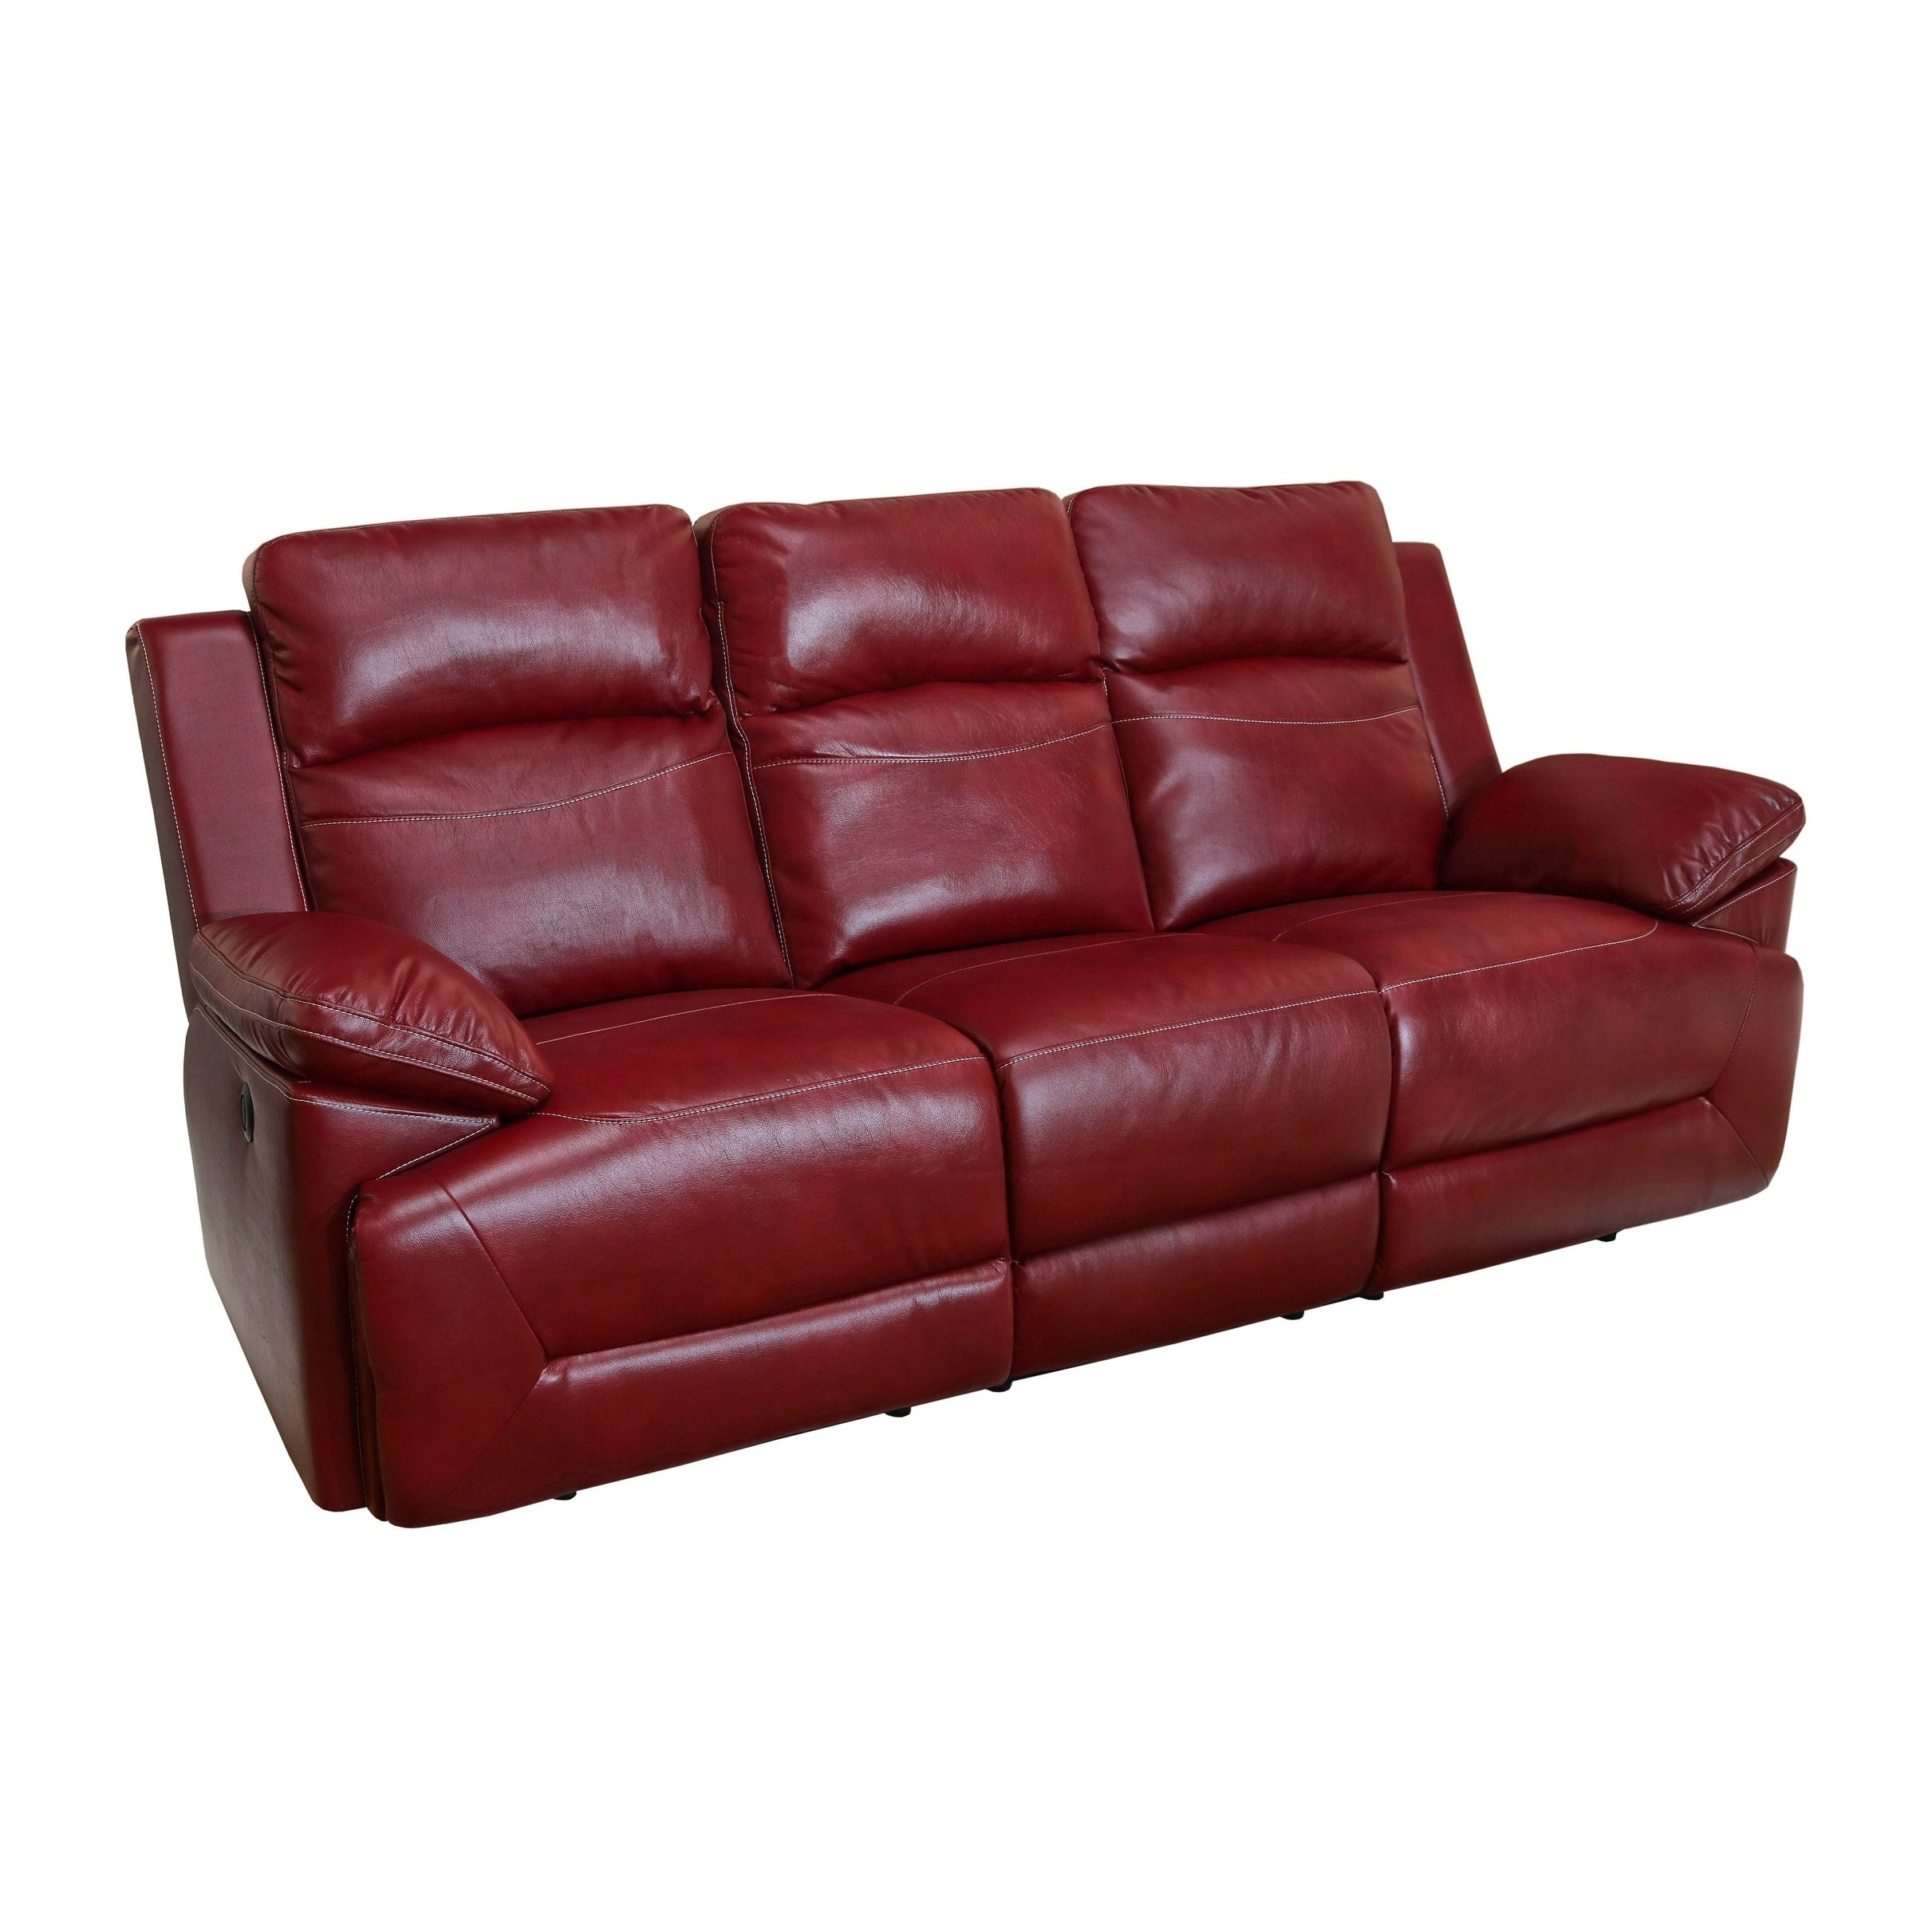 Cortez Red Motion Dual Recliner Sofa Free Shipping Today 20222153